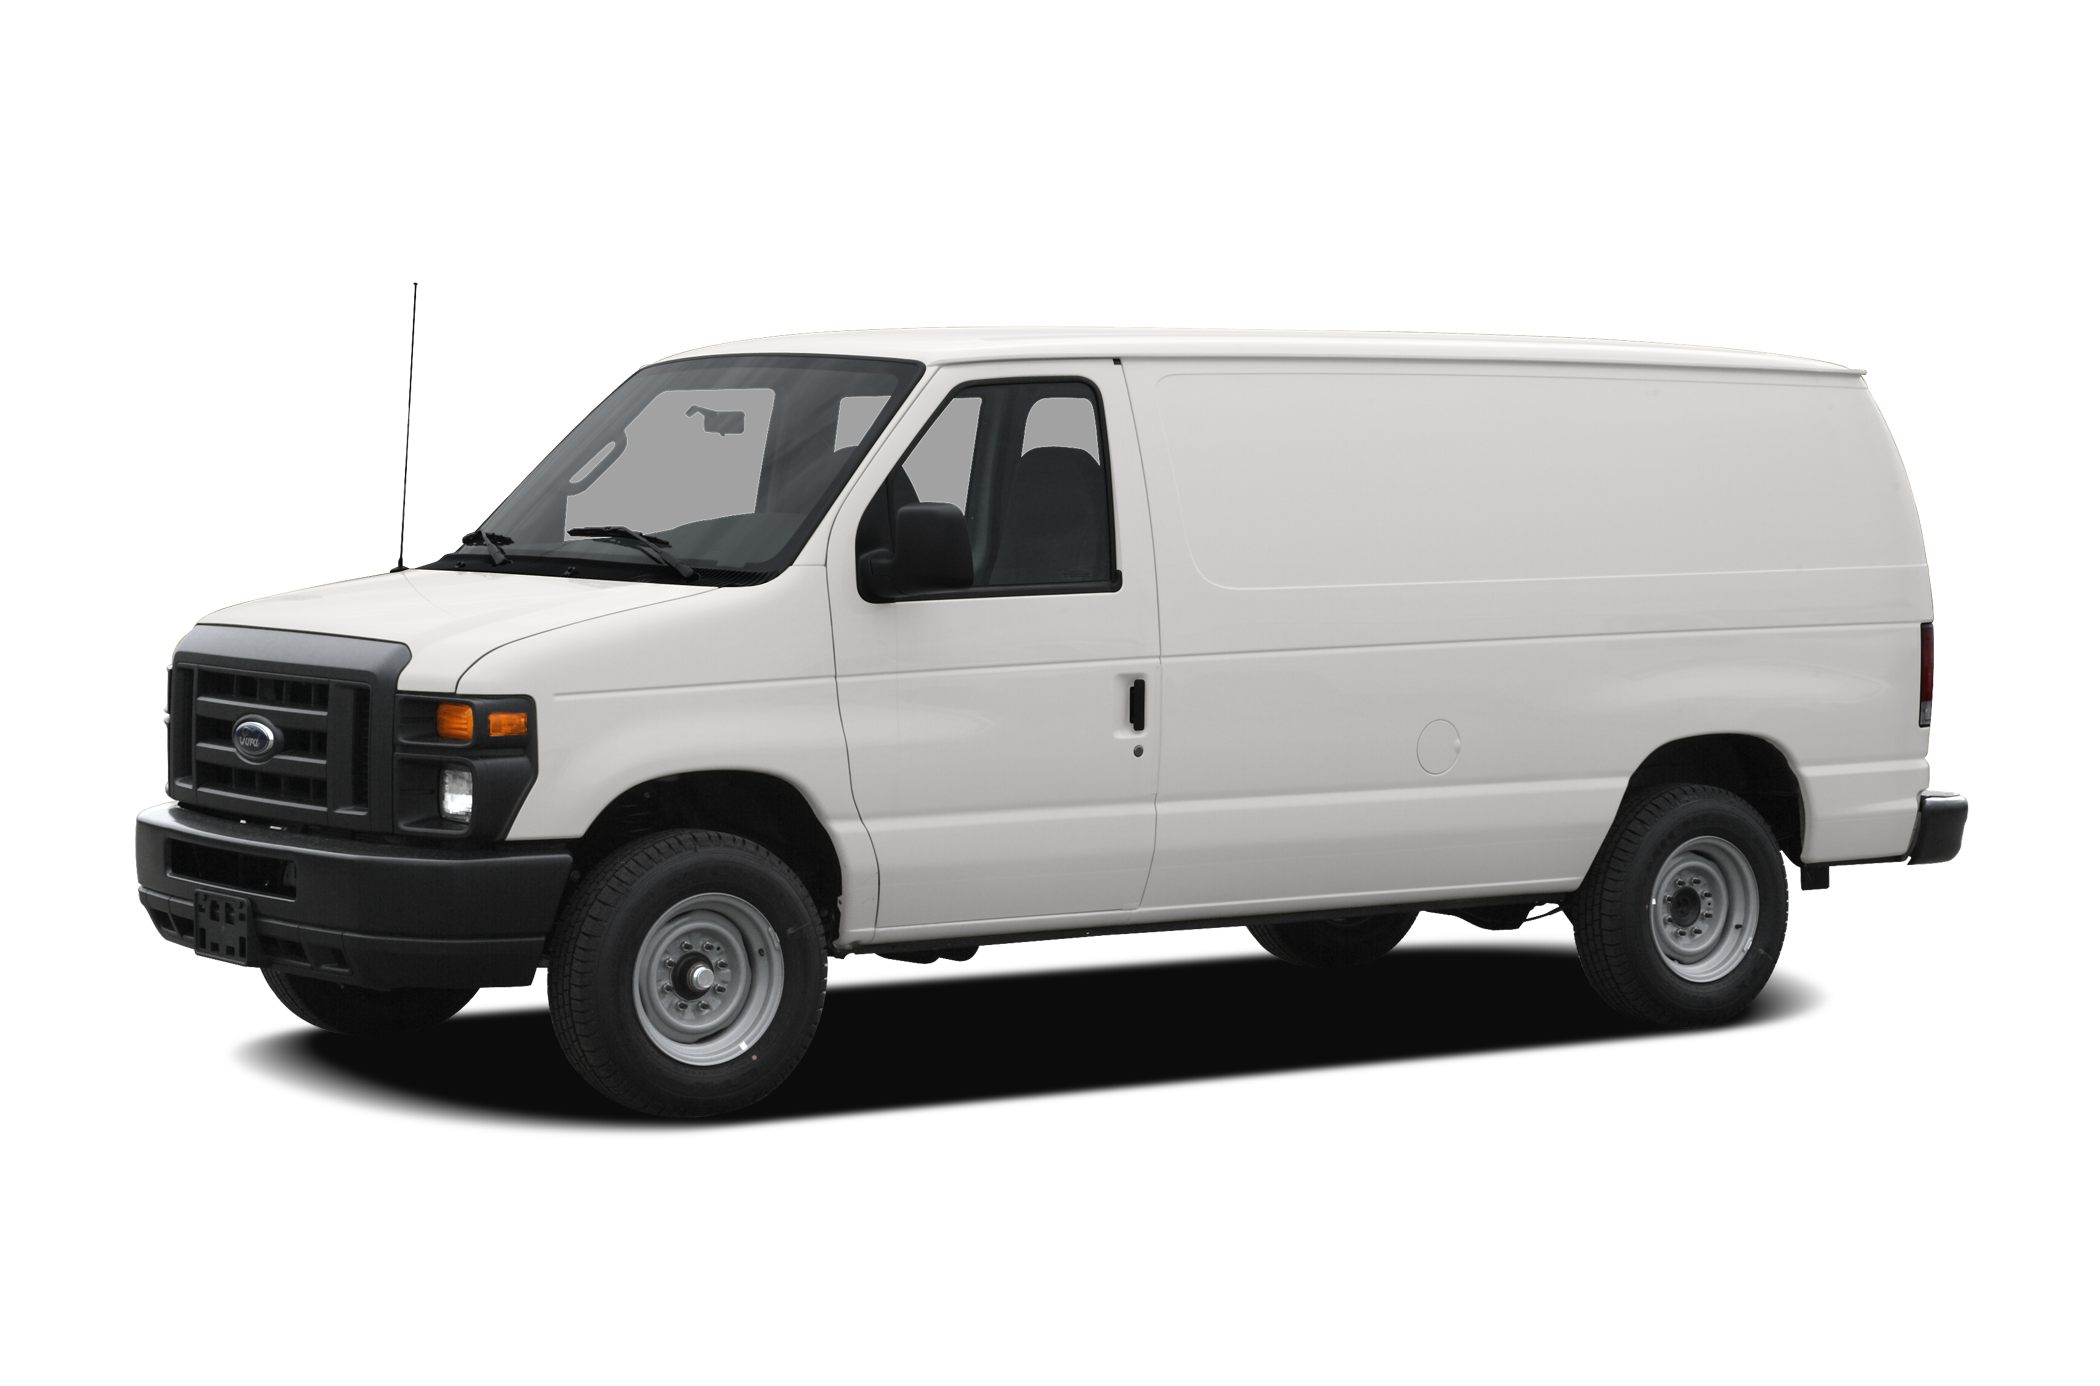 1d15b80e77 2008 Ford E-250 Commercial Cargo Van Specs and Prices